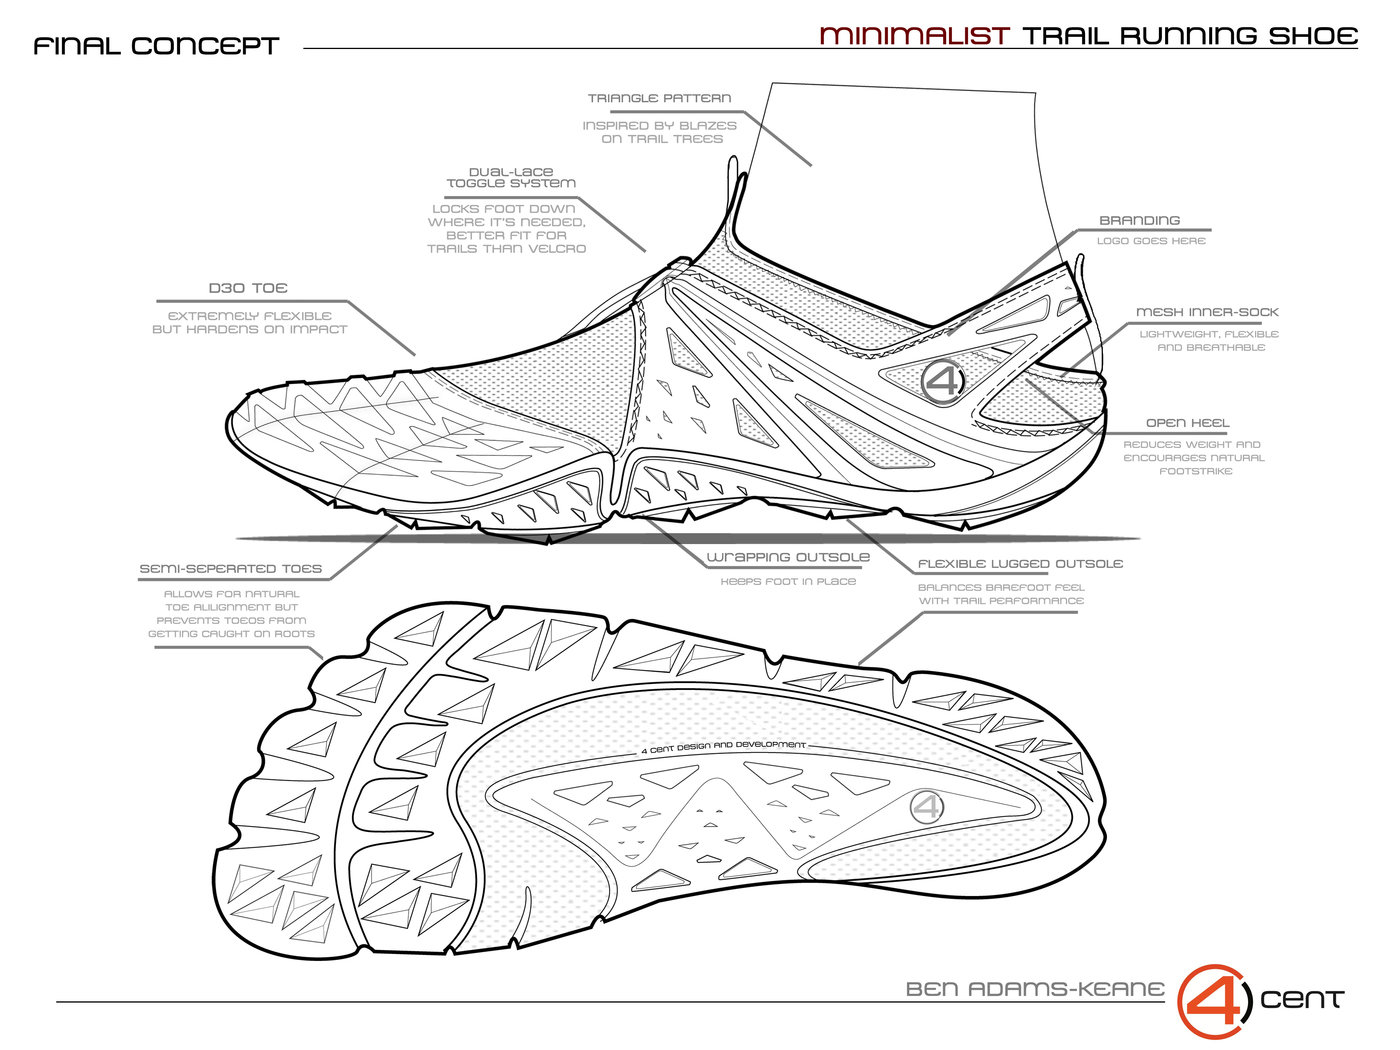 Minimalist Trail Running Shoe by Ben Adams-Keane at